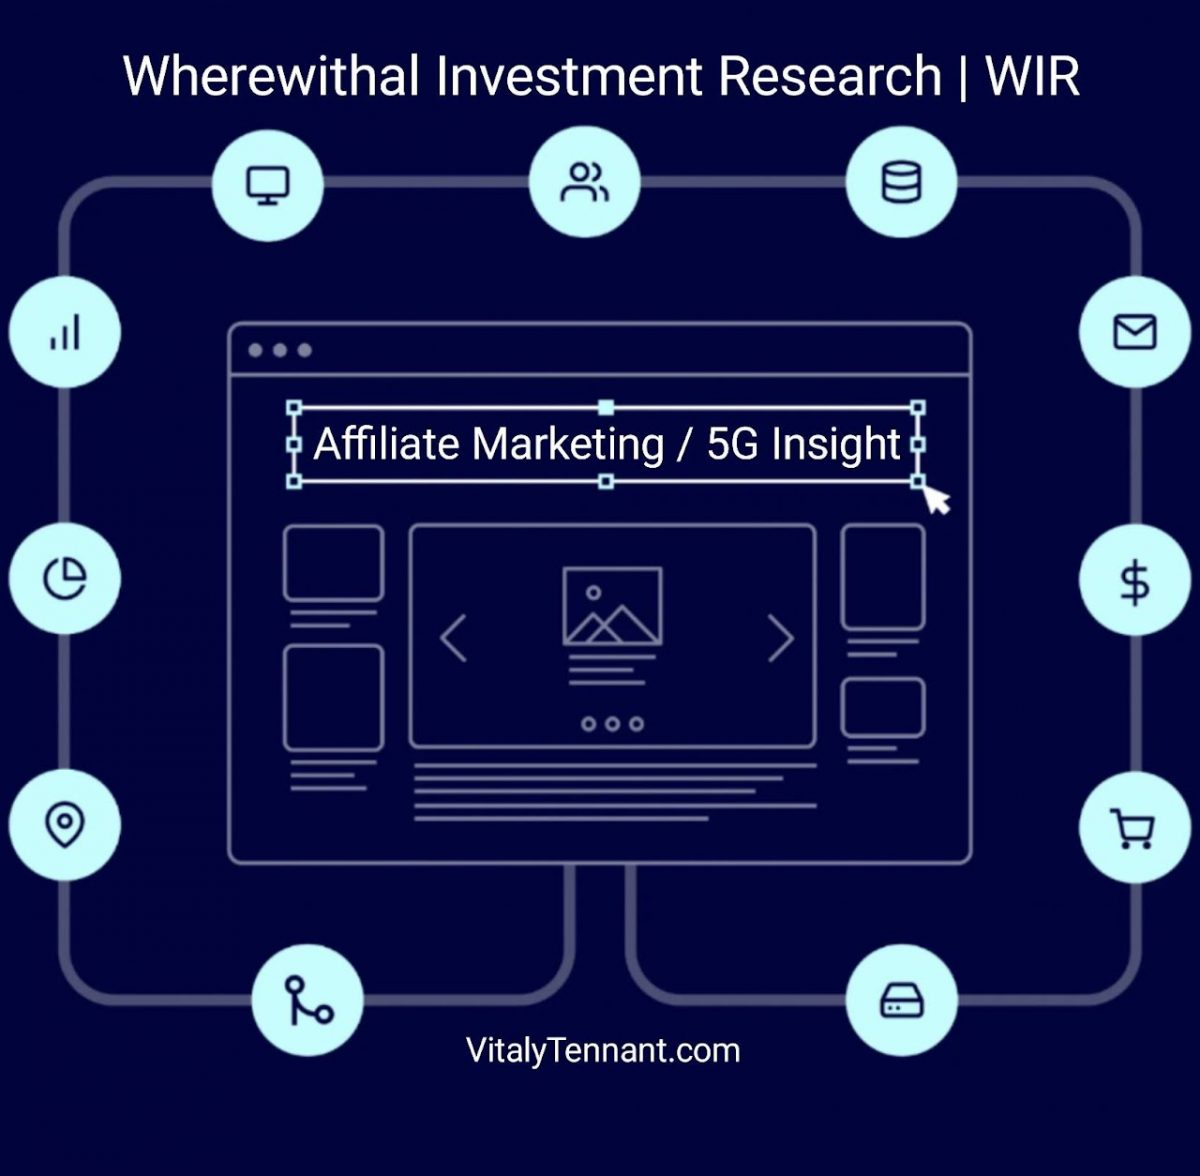 affiliate marketing and 5g from wherewithal investment research by vitalytennant.com